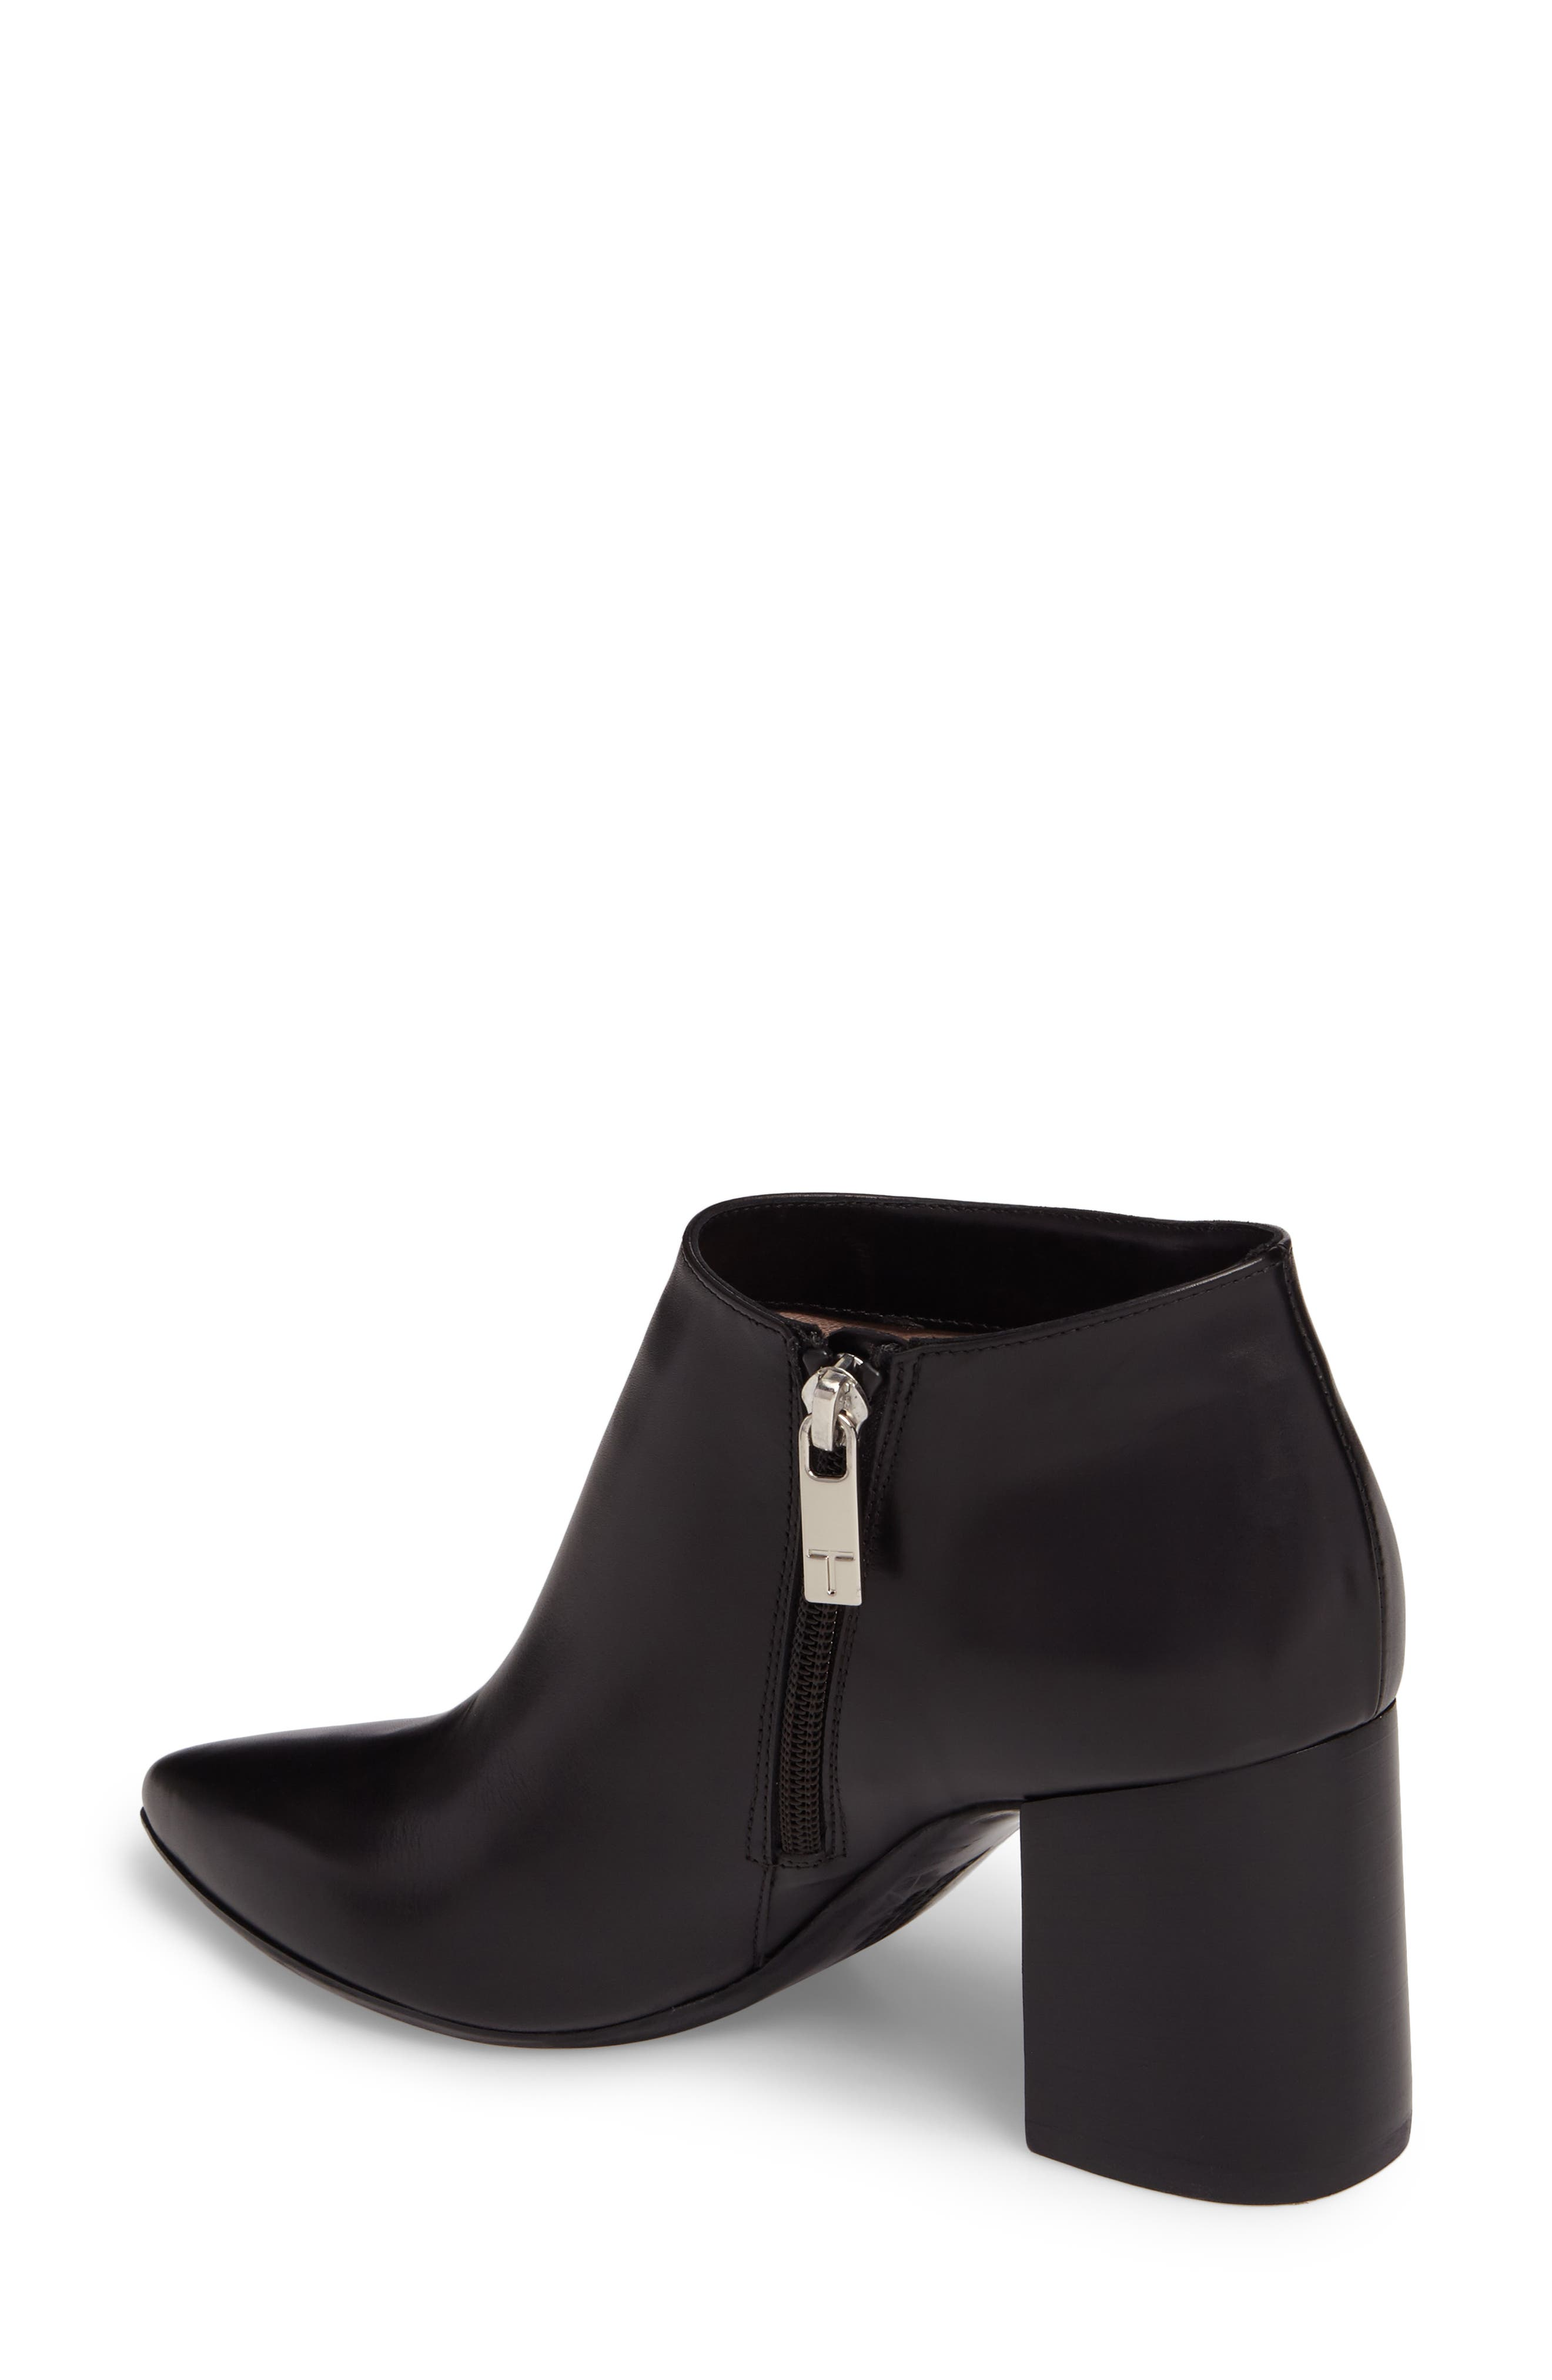 Maria Pointy Toe Bootie,                             Alternate thumbnail 2, color,                             Black Leather